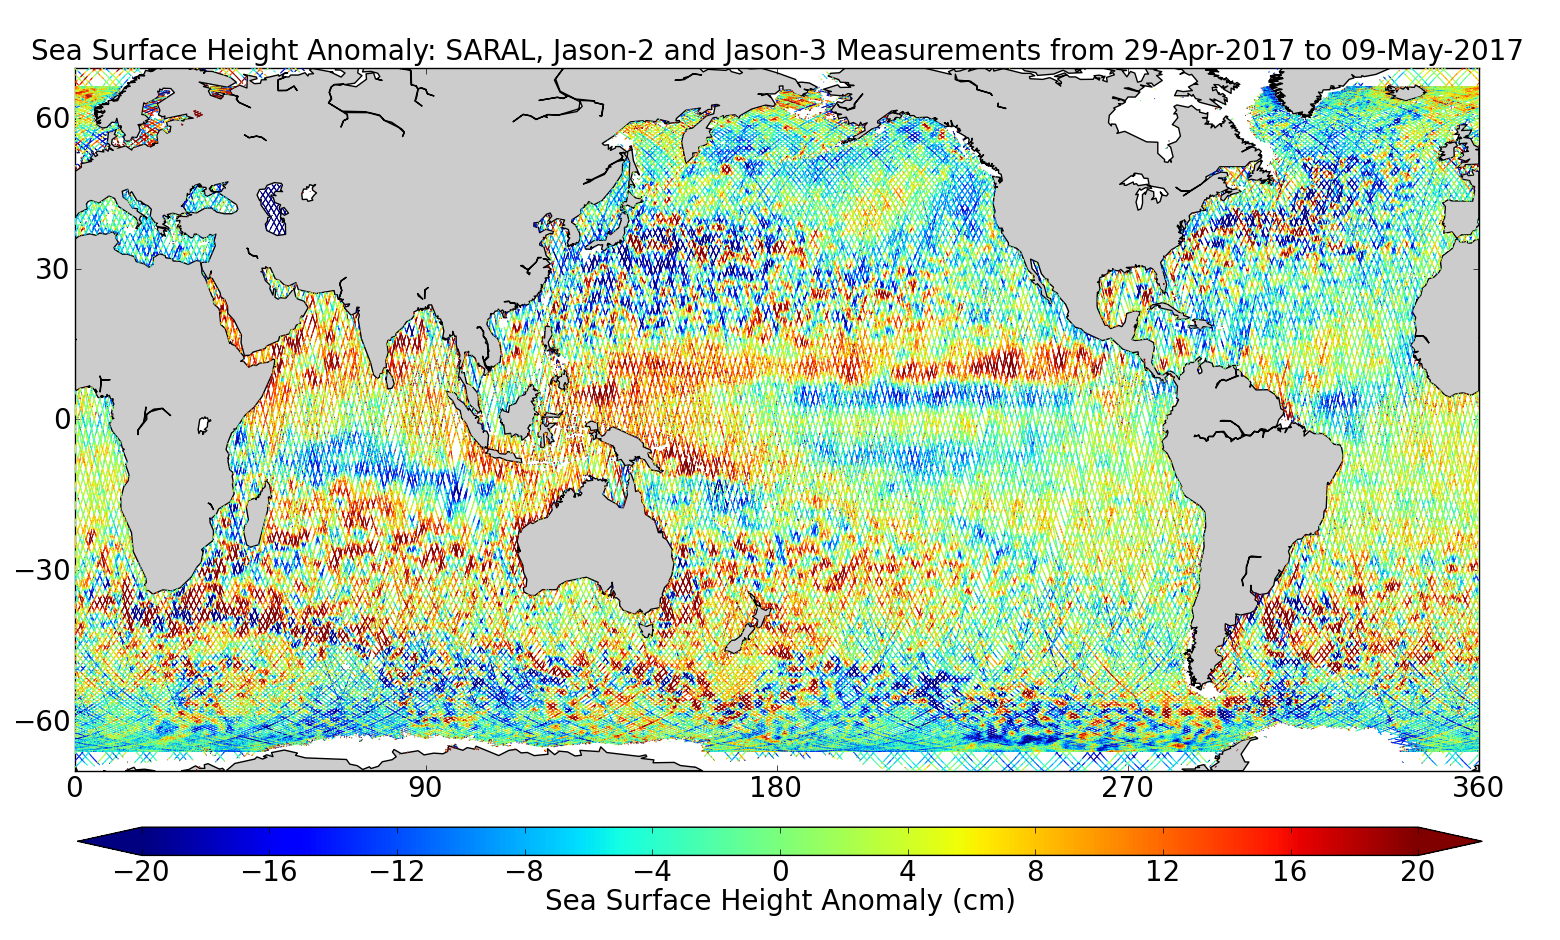 Sea Surface Height Anomaly: SARAL, Jason-2 and Jason-3 Measurements from 29-Apr-2017 to 09-May-2017